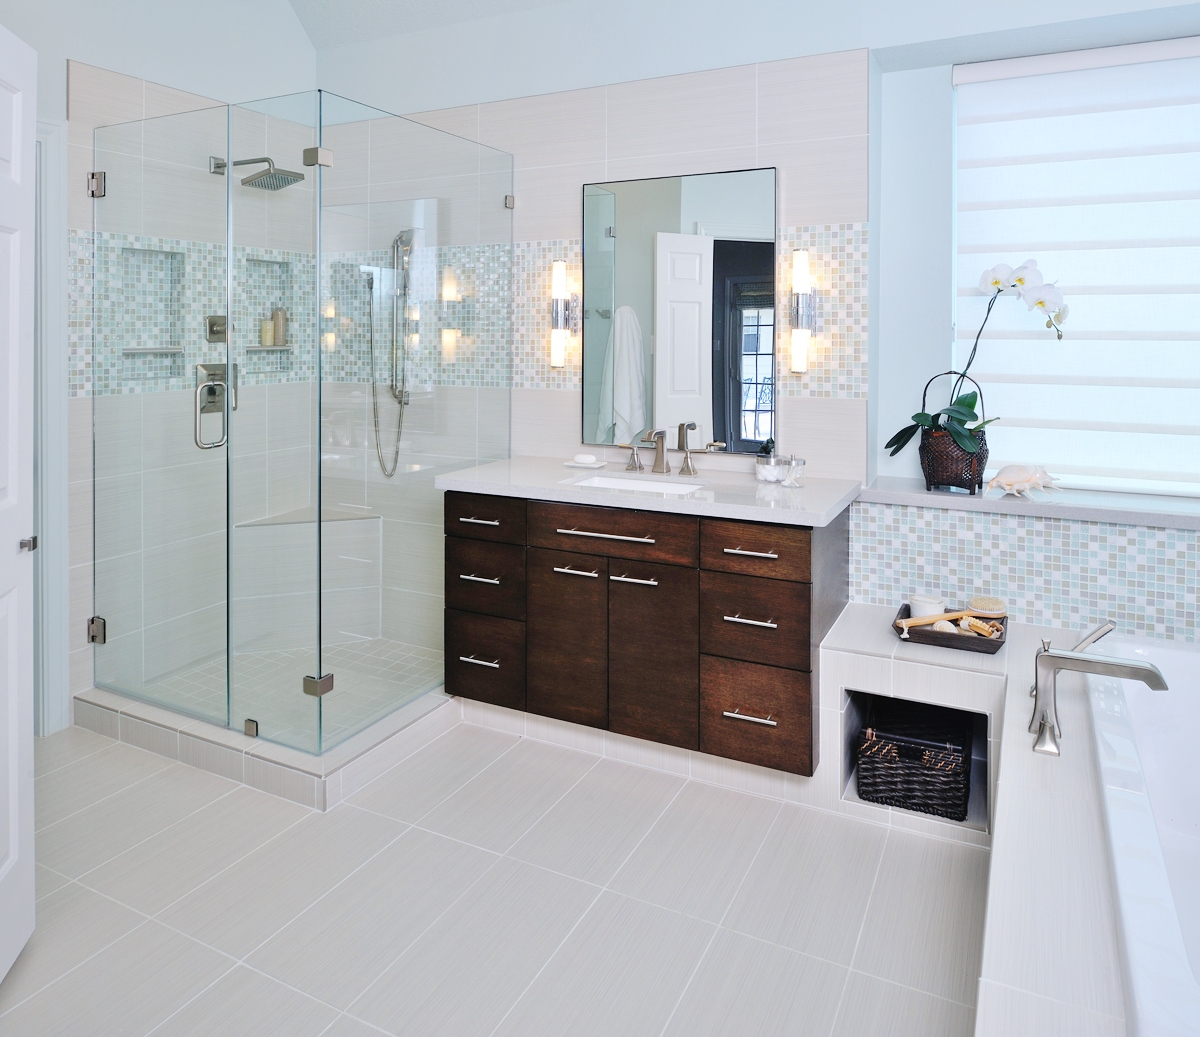 Designing A Small Bathroom 11 Simple Ways To Make A Small Bathroom Look Bigger Designed